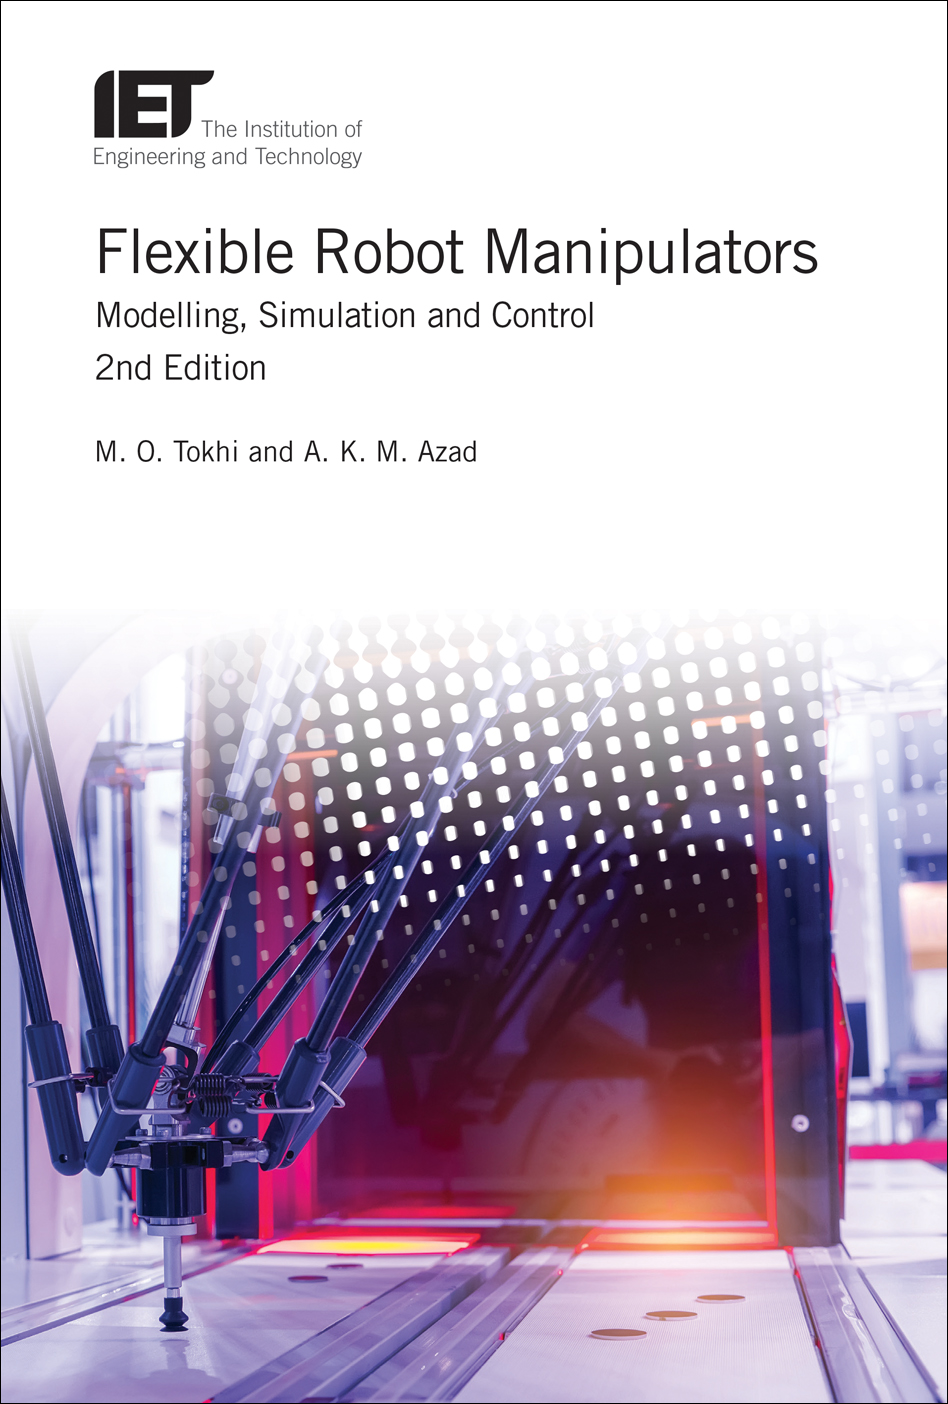 Flexible Robot Manipulators, Modelling, simulation and control, 2nd Edition